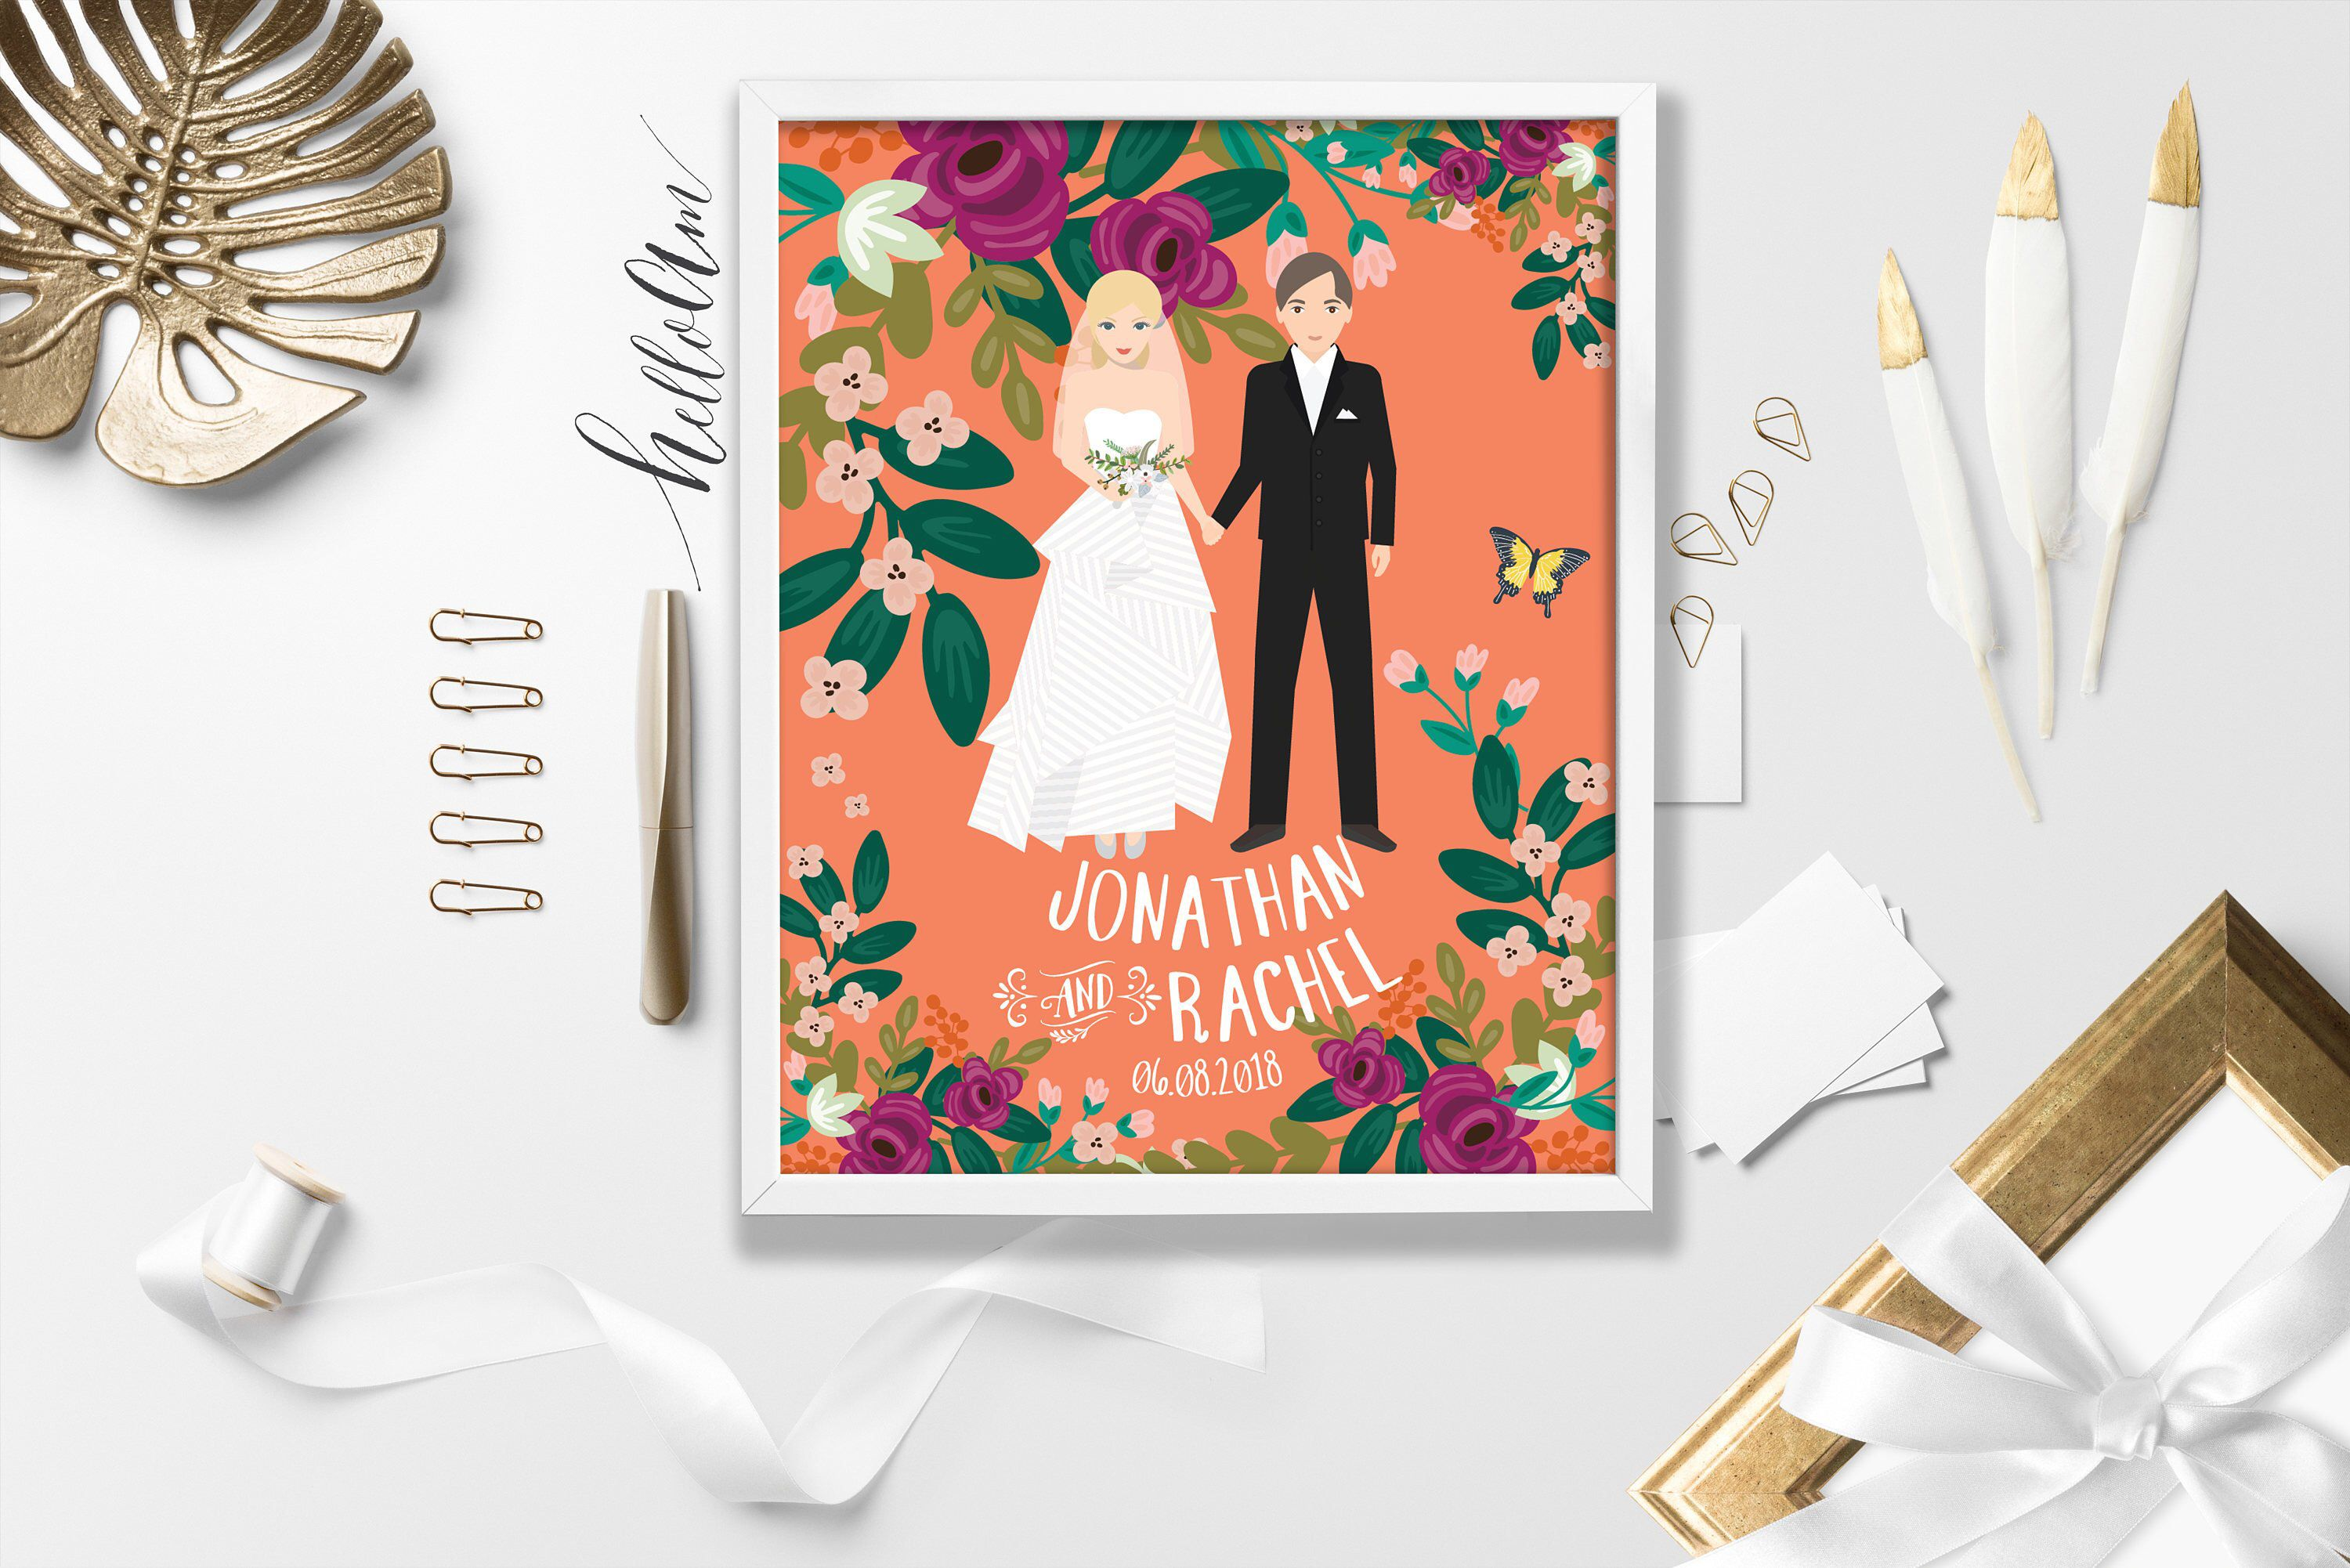 Best Selling Items Personalized Wedding Gift Personalized Etsy Personalized Wedding Gifts Wedding Gifts Personalized Couple Gifts